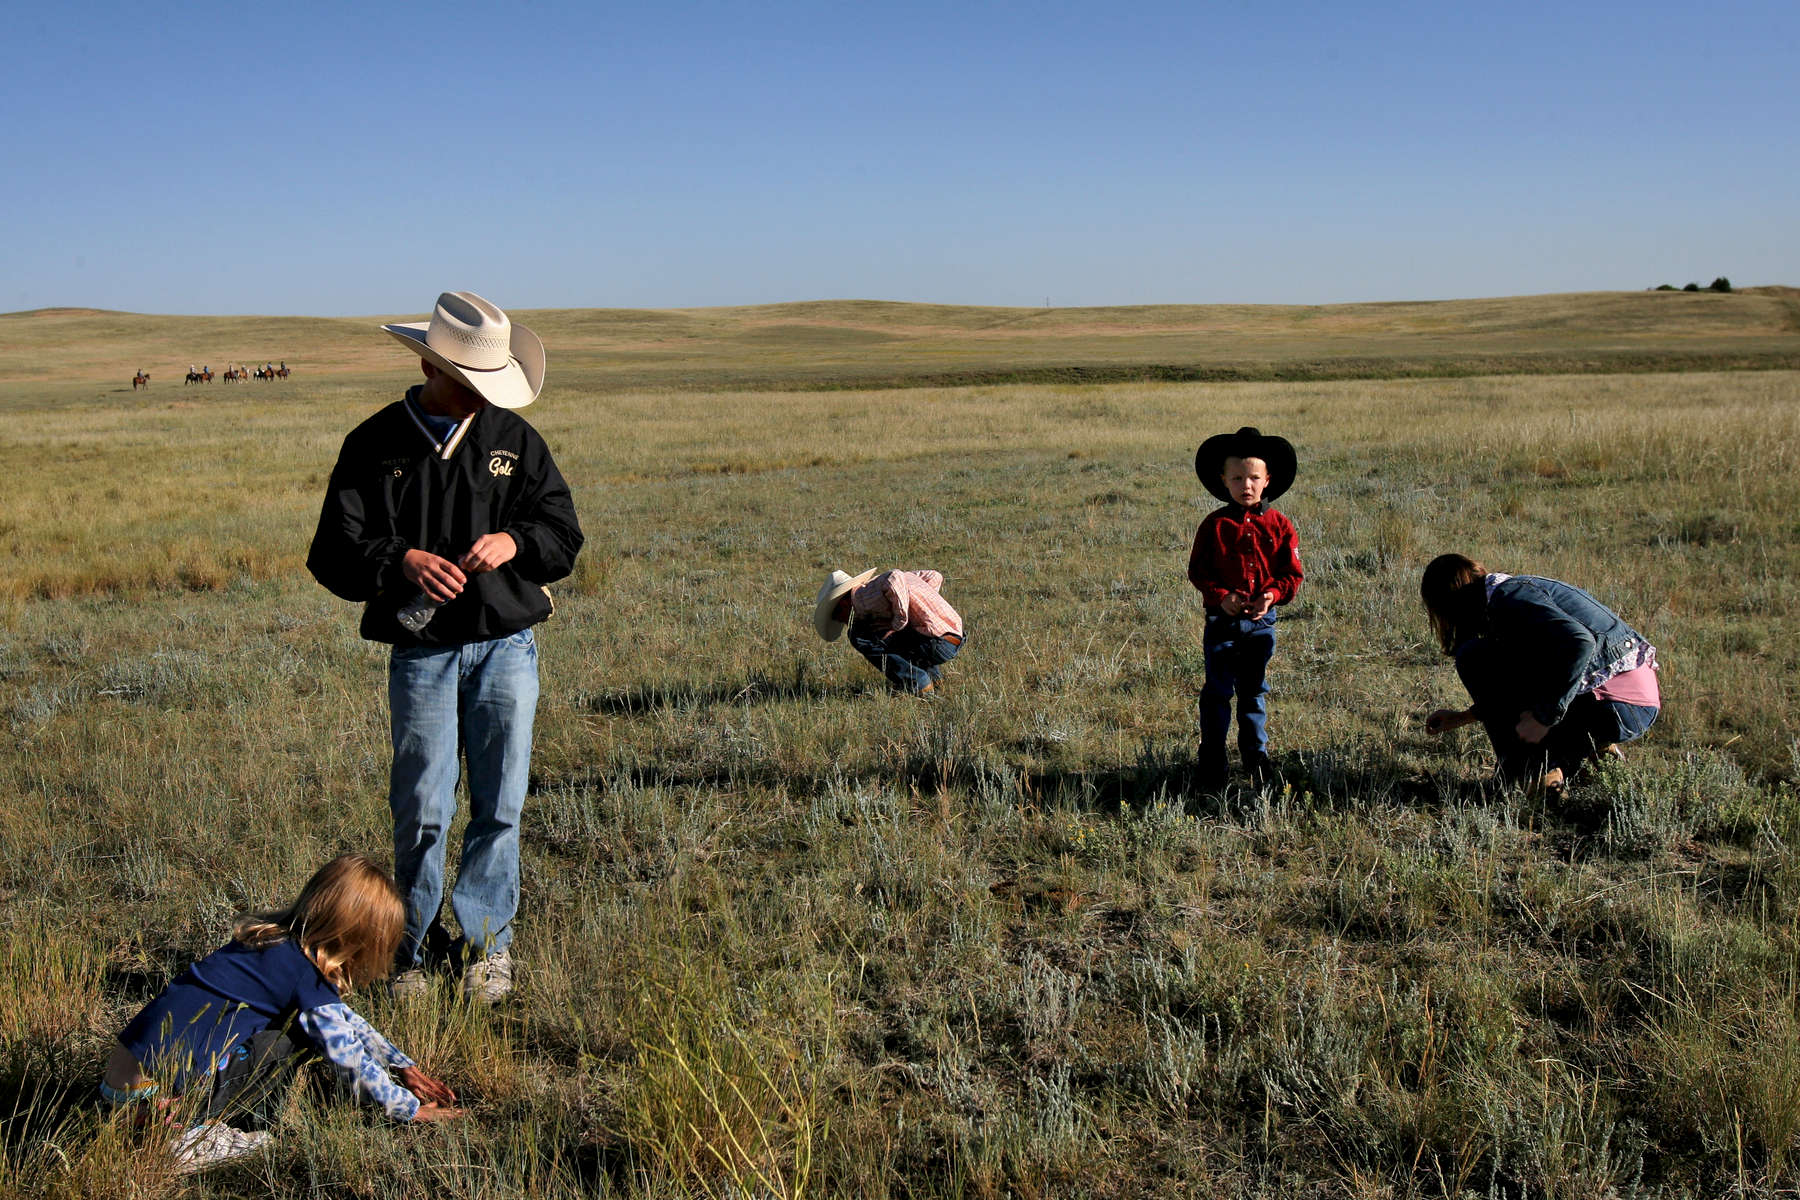 Kids entertain themselves by catching grasshoppers in the pasture while cowboys head down the hill for the Cheyenne Frontier Days big cattle drive in Cheyenne, Wyo.